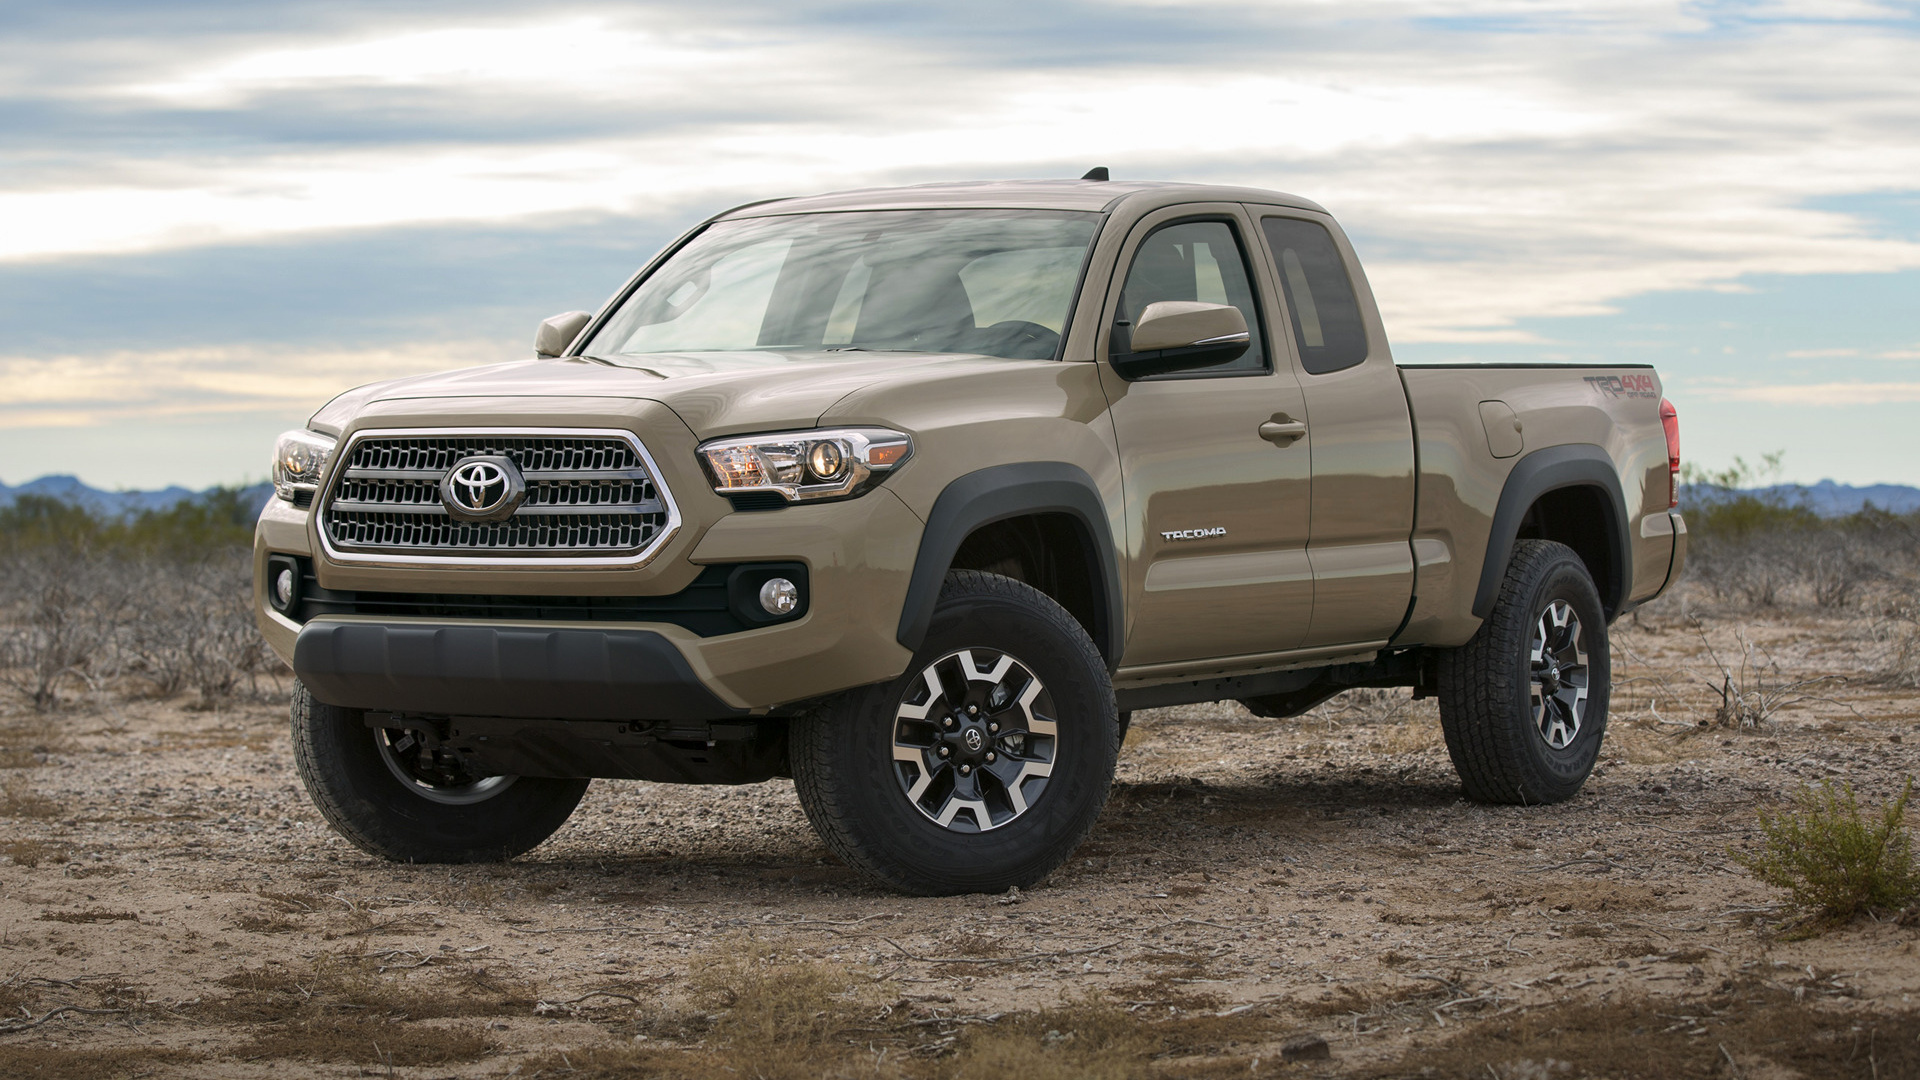 Toyota Tundra Diesel 2016 >> 2016 Toyota Tacoma TRD Off-Road Access Cab - Wallpapers ...